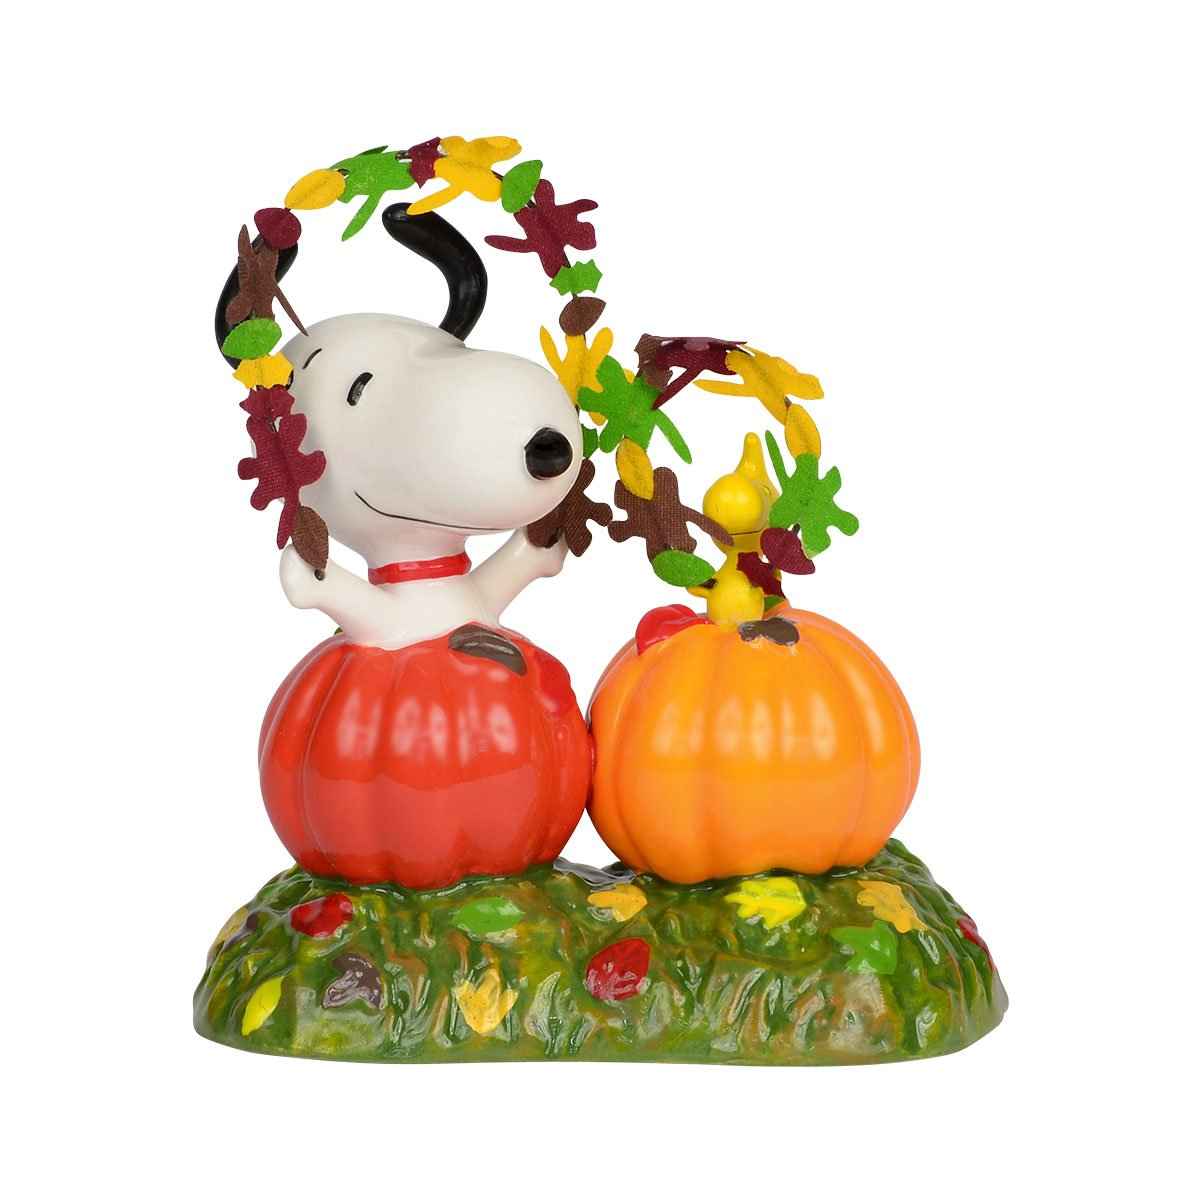 Department 56 Peanuts Happy Harvest Figurine, 3.94 inch